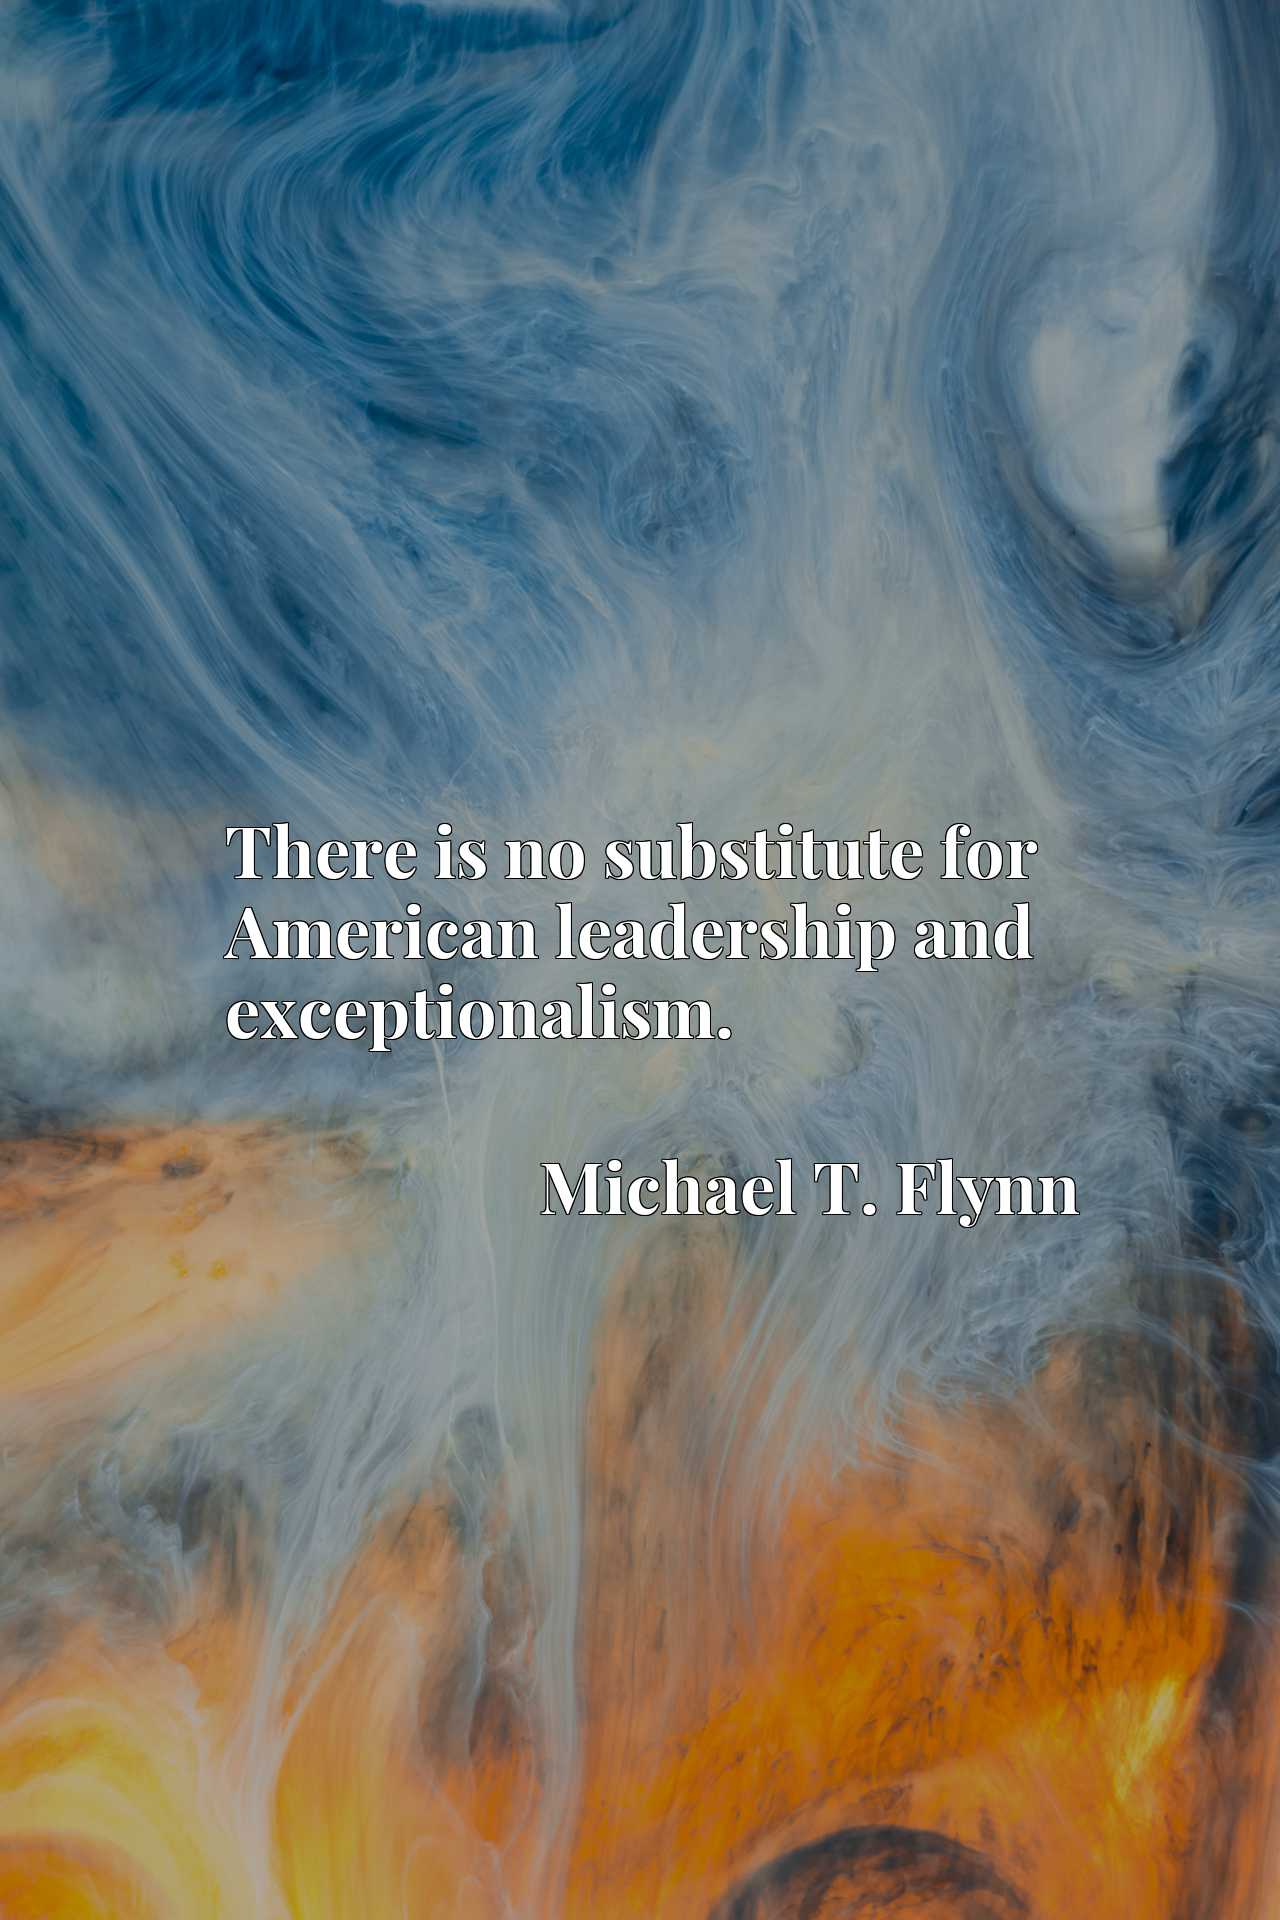 Quote Picture :There is no substitute for American leadership and exceptionalism.